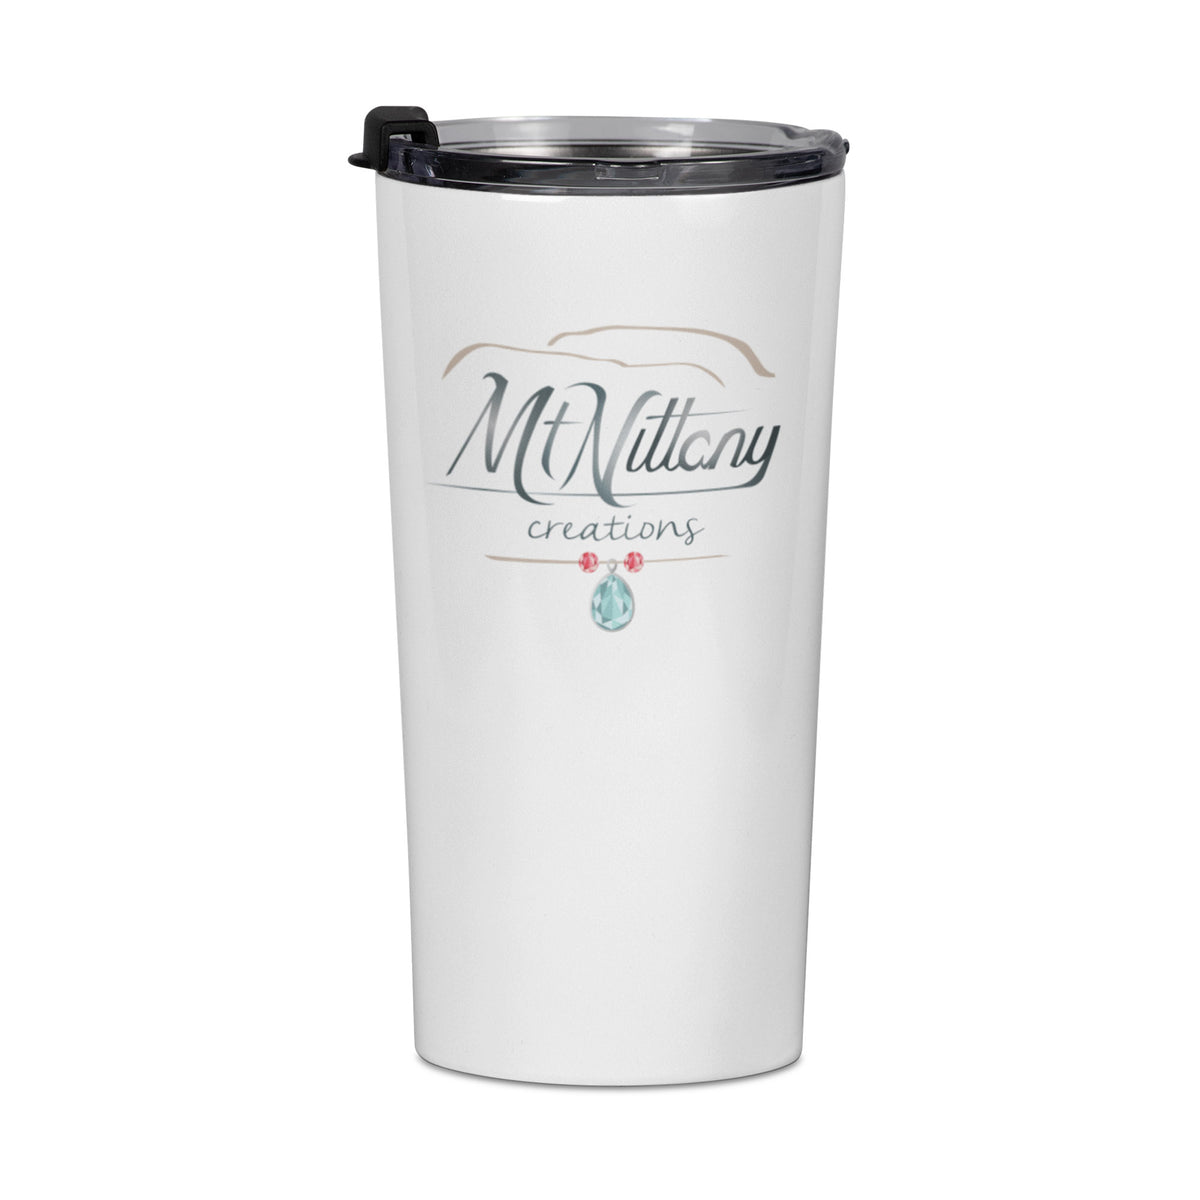 Mt Nittany Creations We Support PA Travel Mug